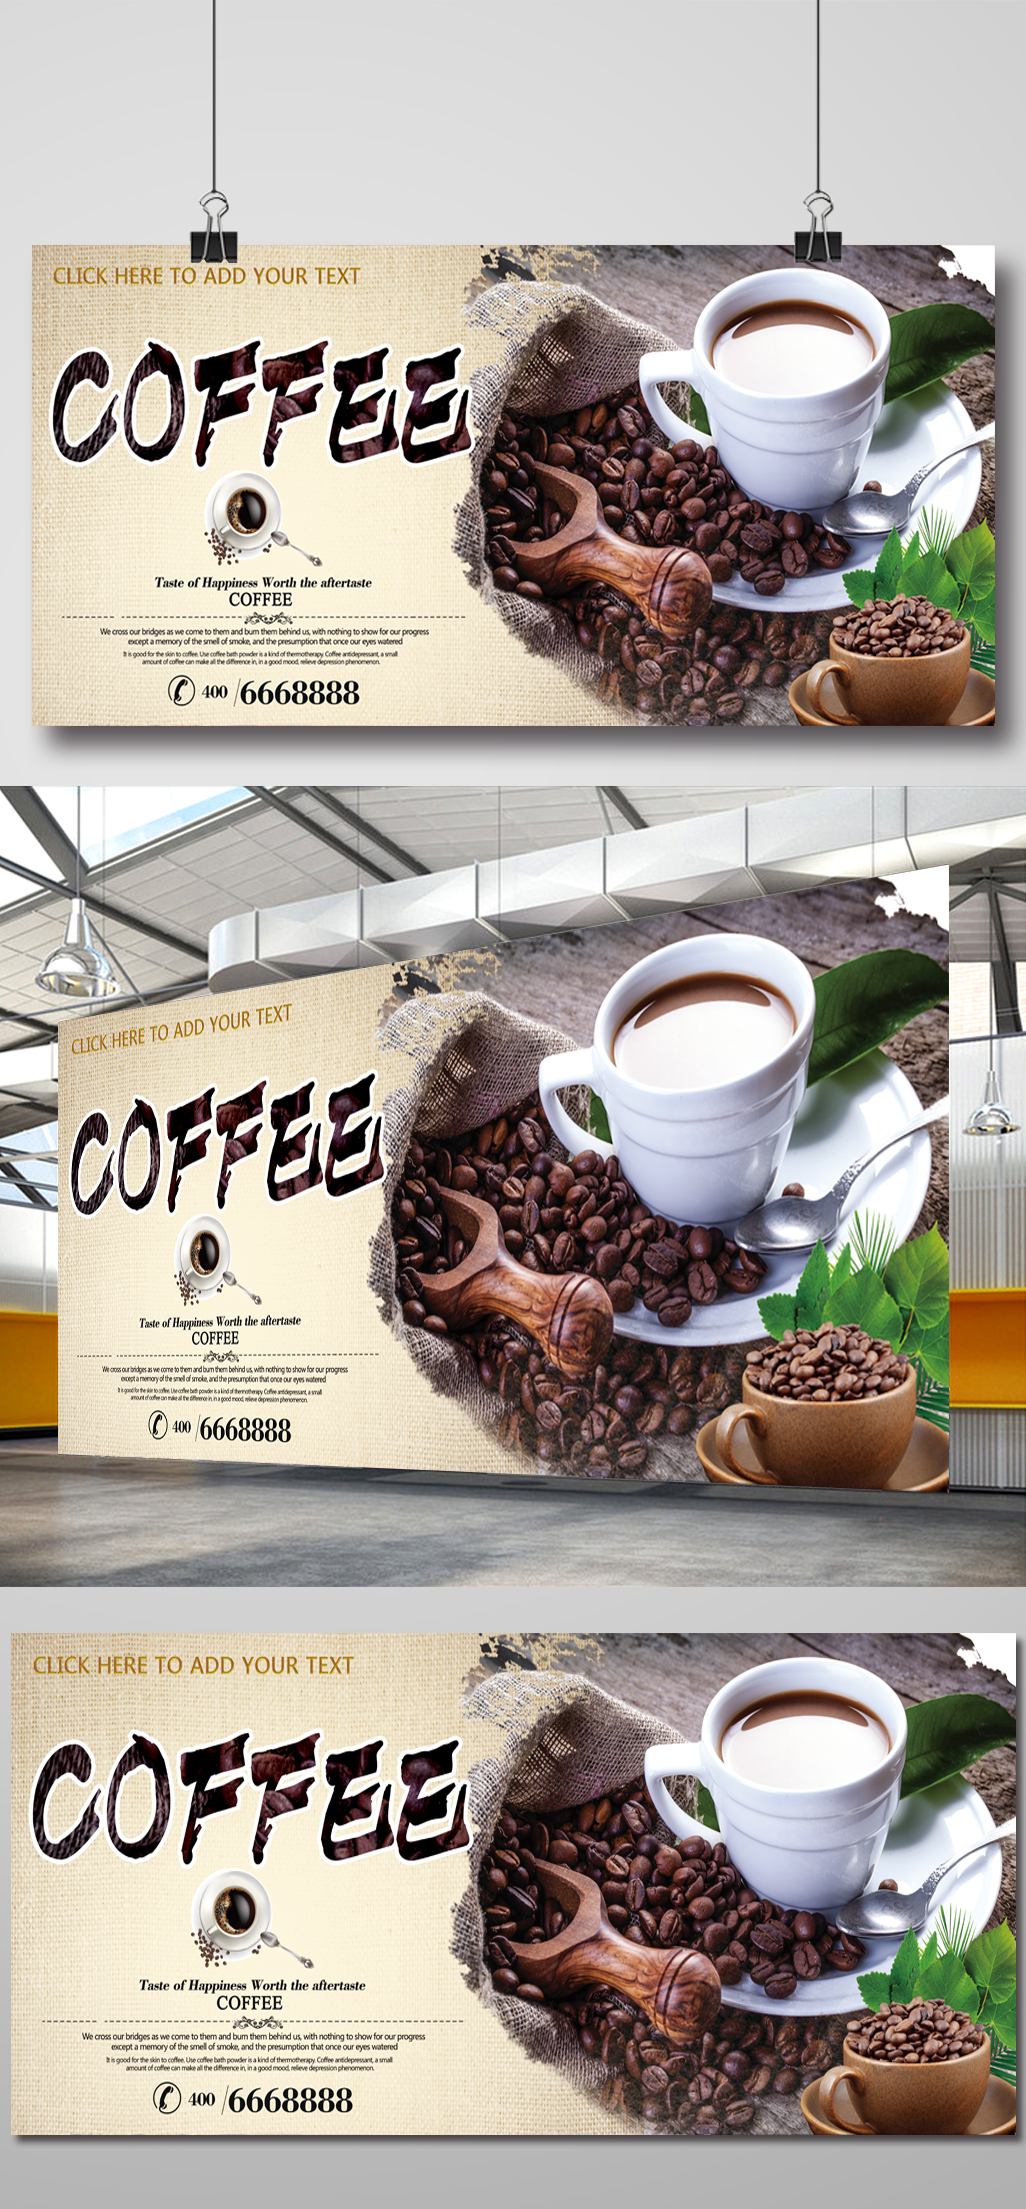 Open source psd banner file for web and print quality for coffee lovers